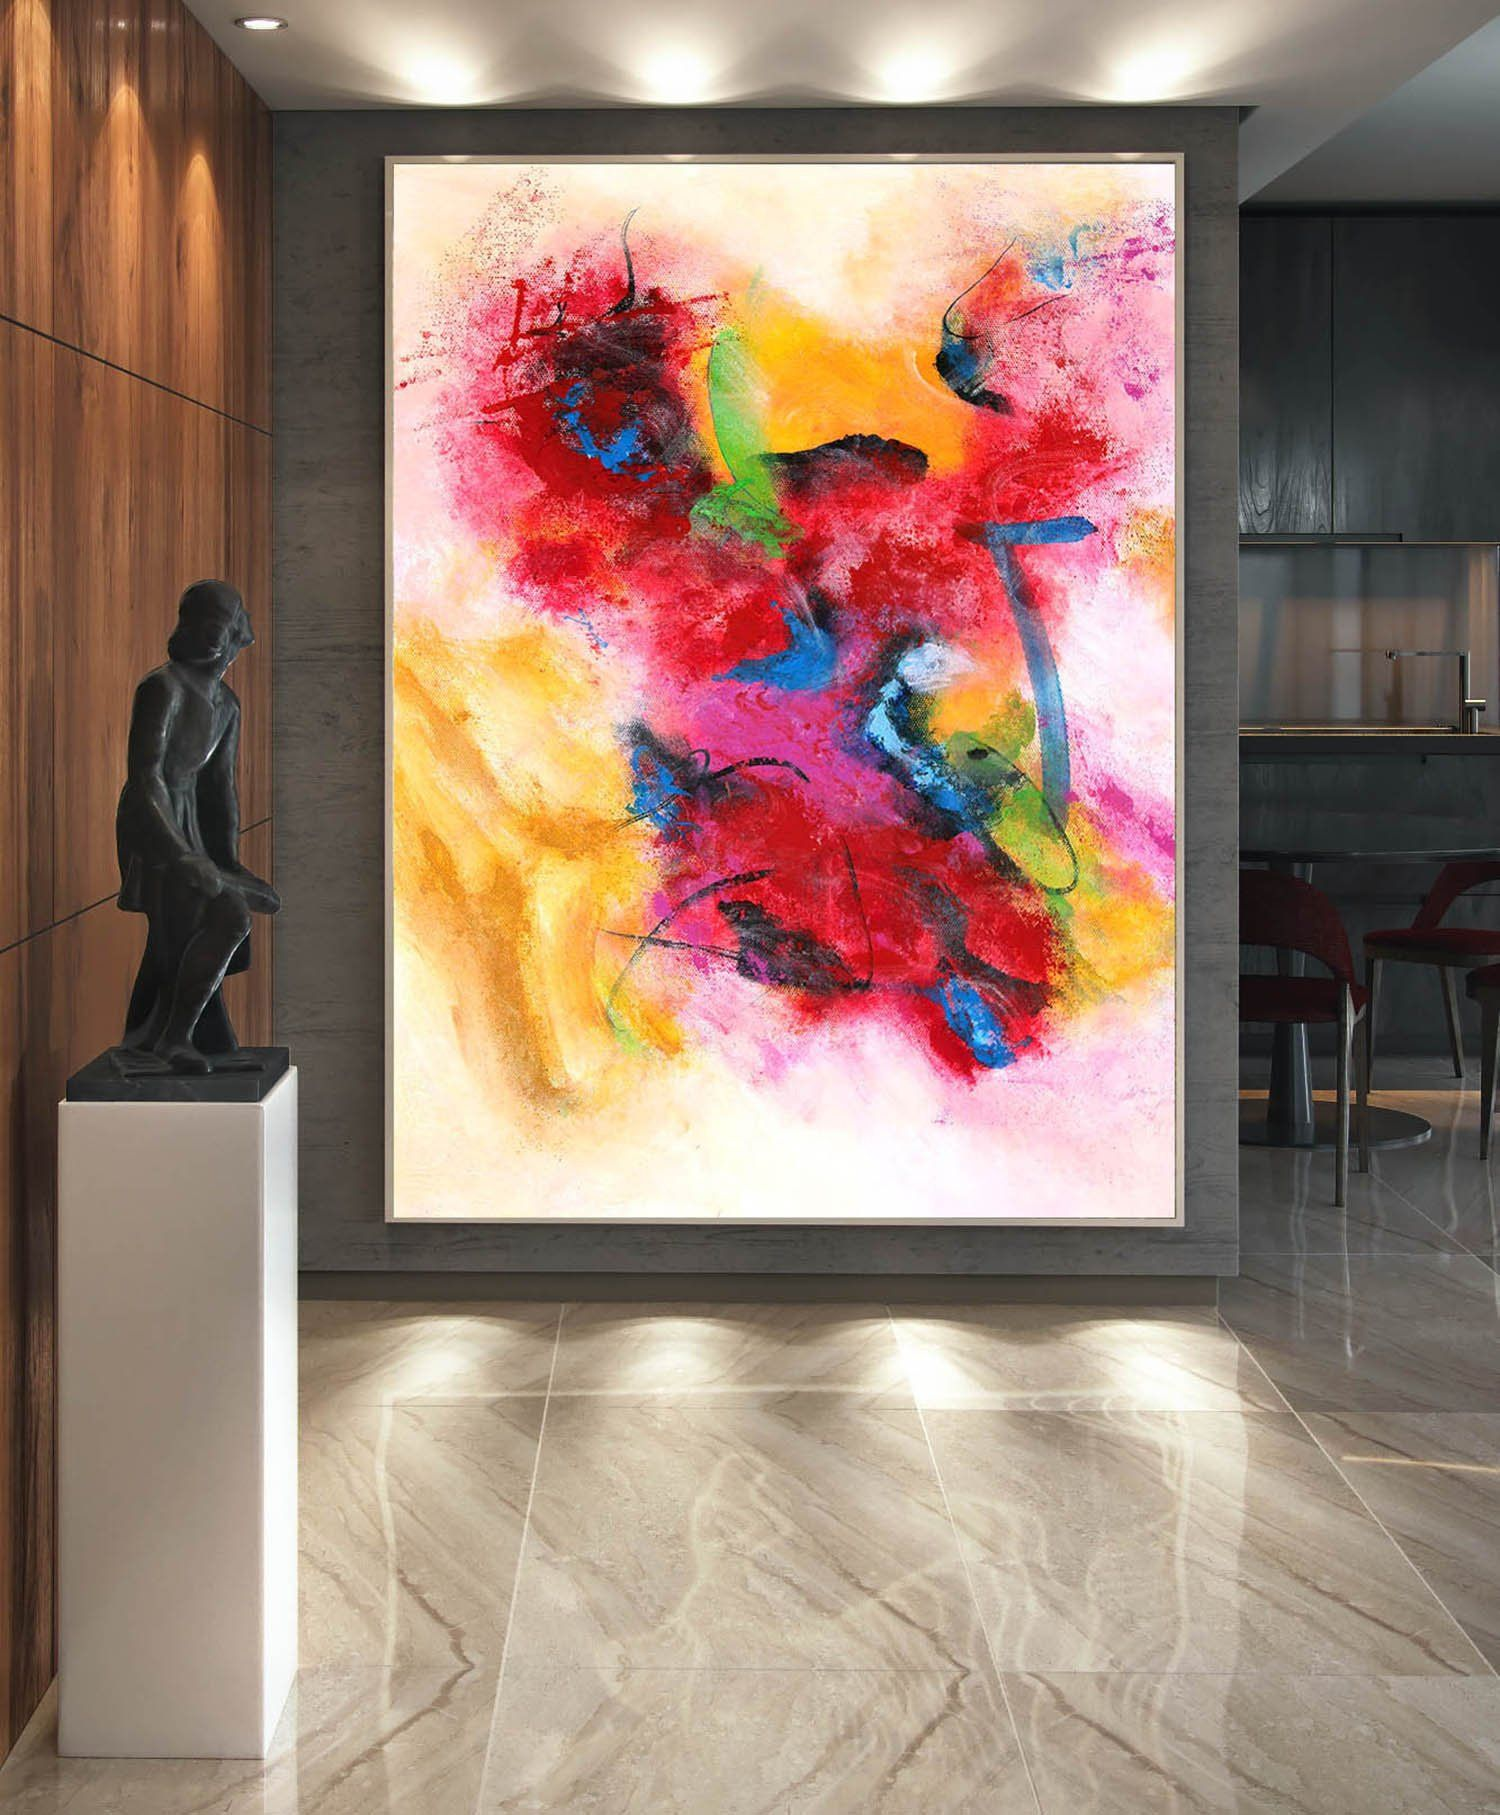 Large Modern Wall Art Painting Square Painting Home Decor Wall Art Office Decor Set Text Large Contemporary Wall Art Extra Large Wall Art Contemporary Wall Art